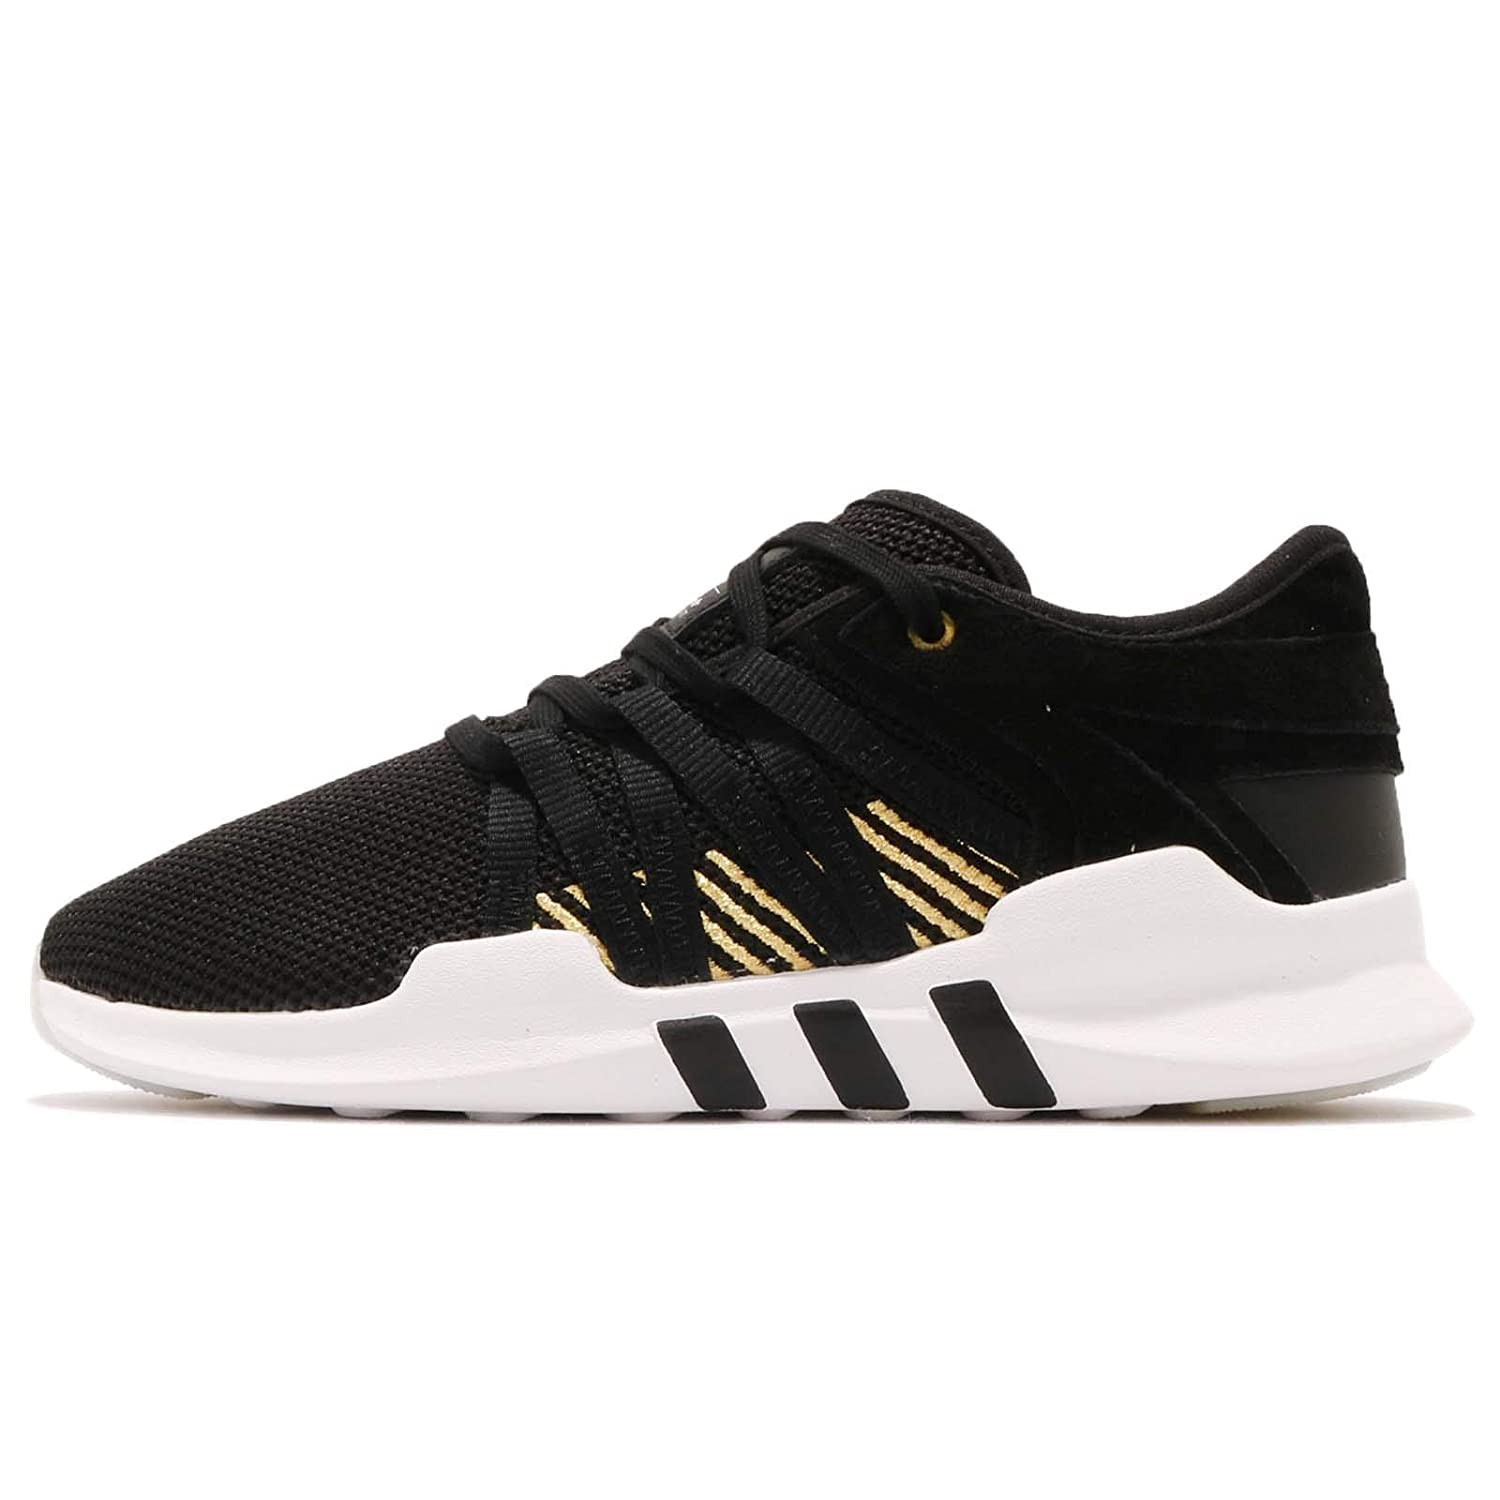 quality design 3c9fb 459f0 Amazon.com | adidas Women's EQT Racing ADV W, Black/Gold ...